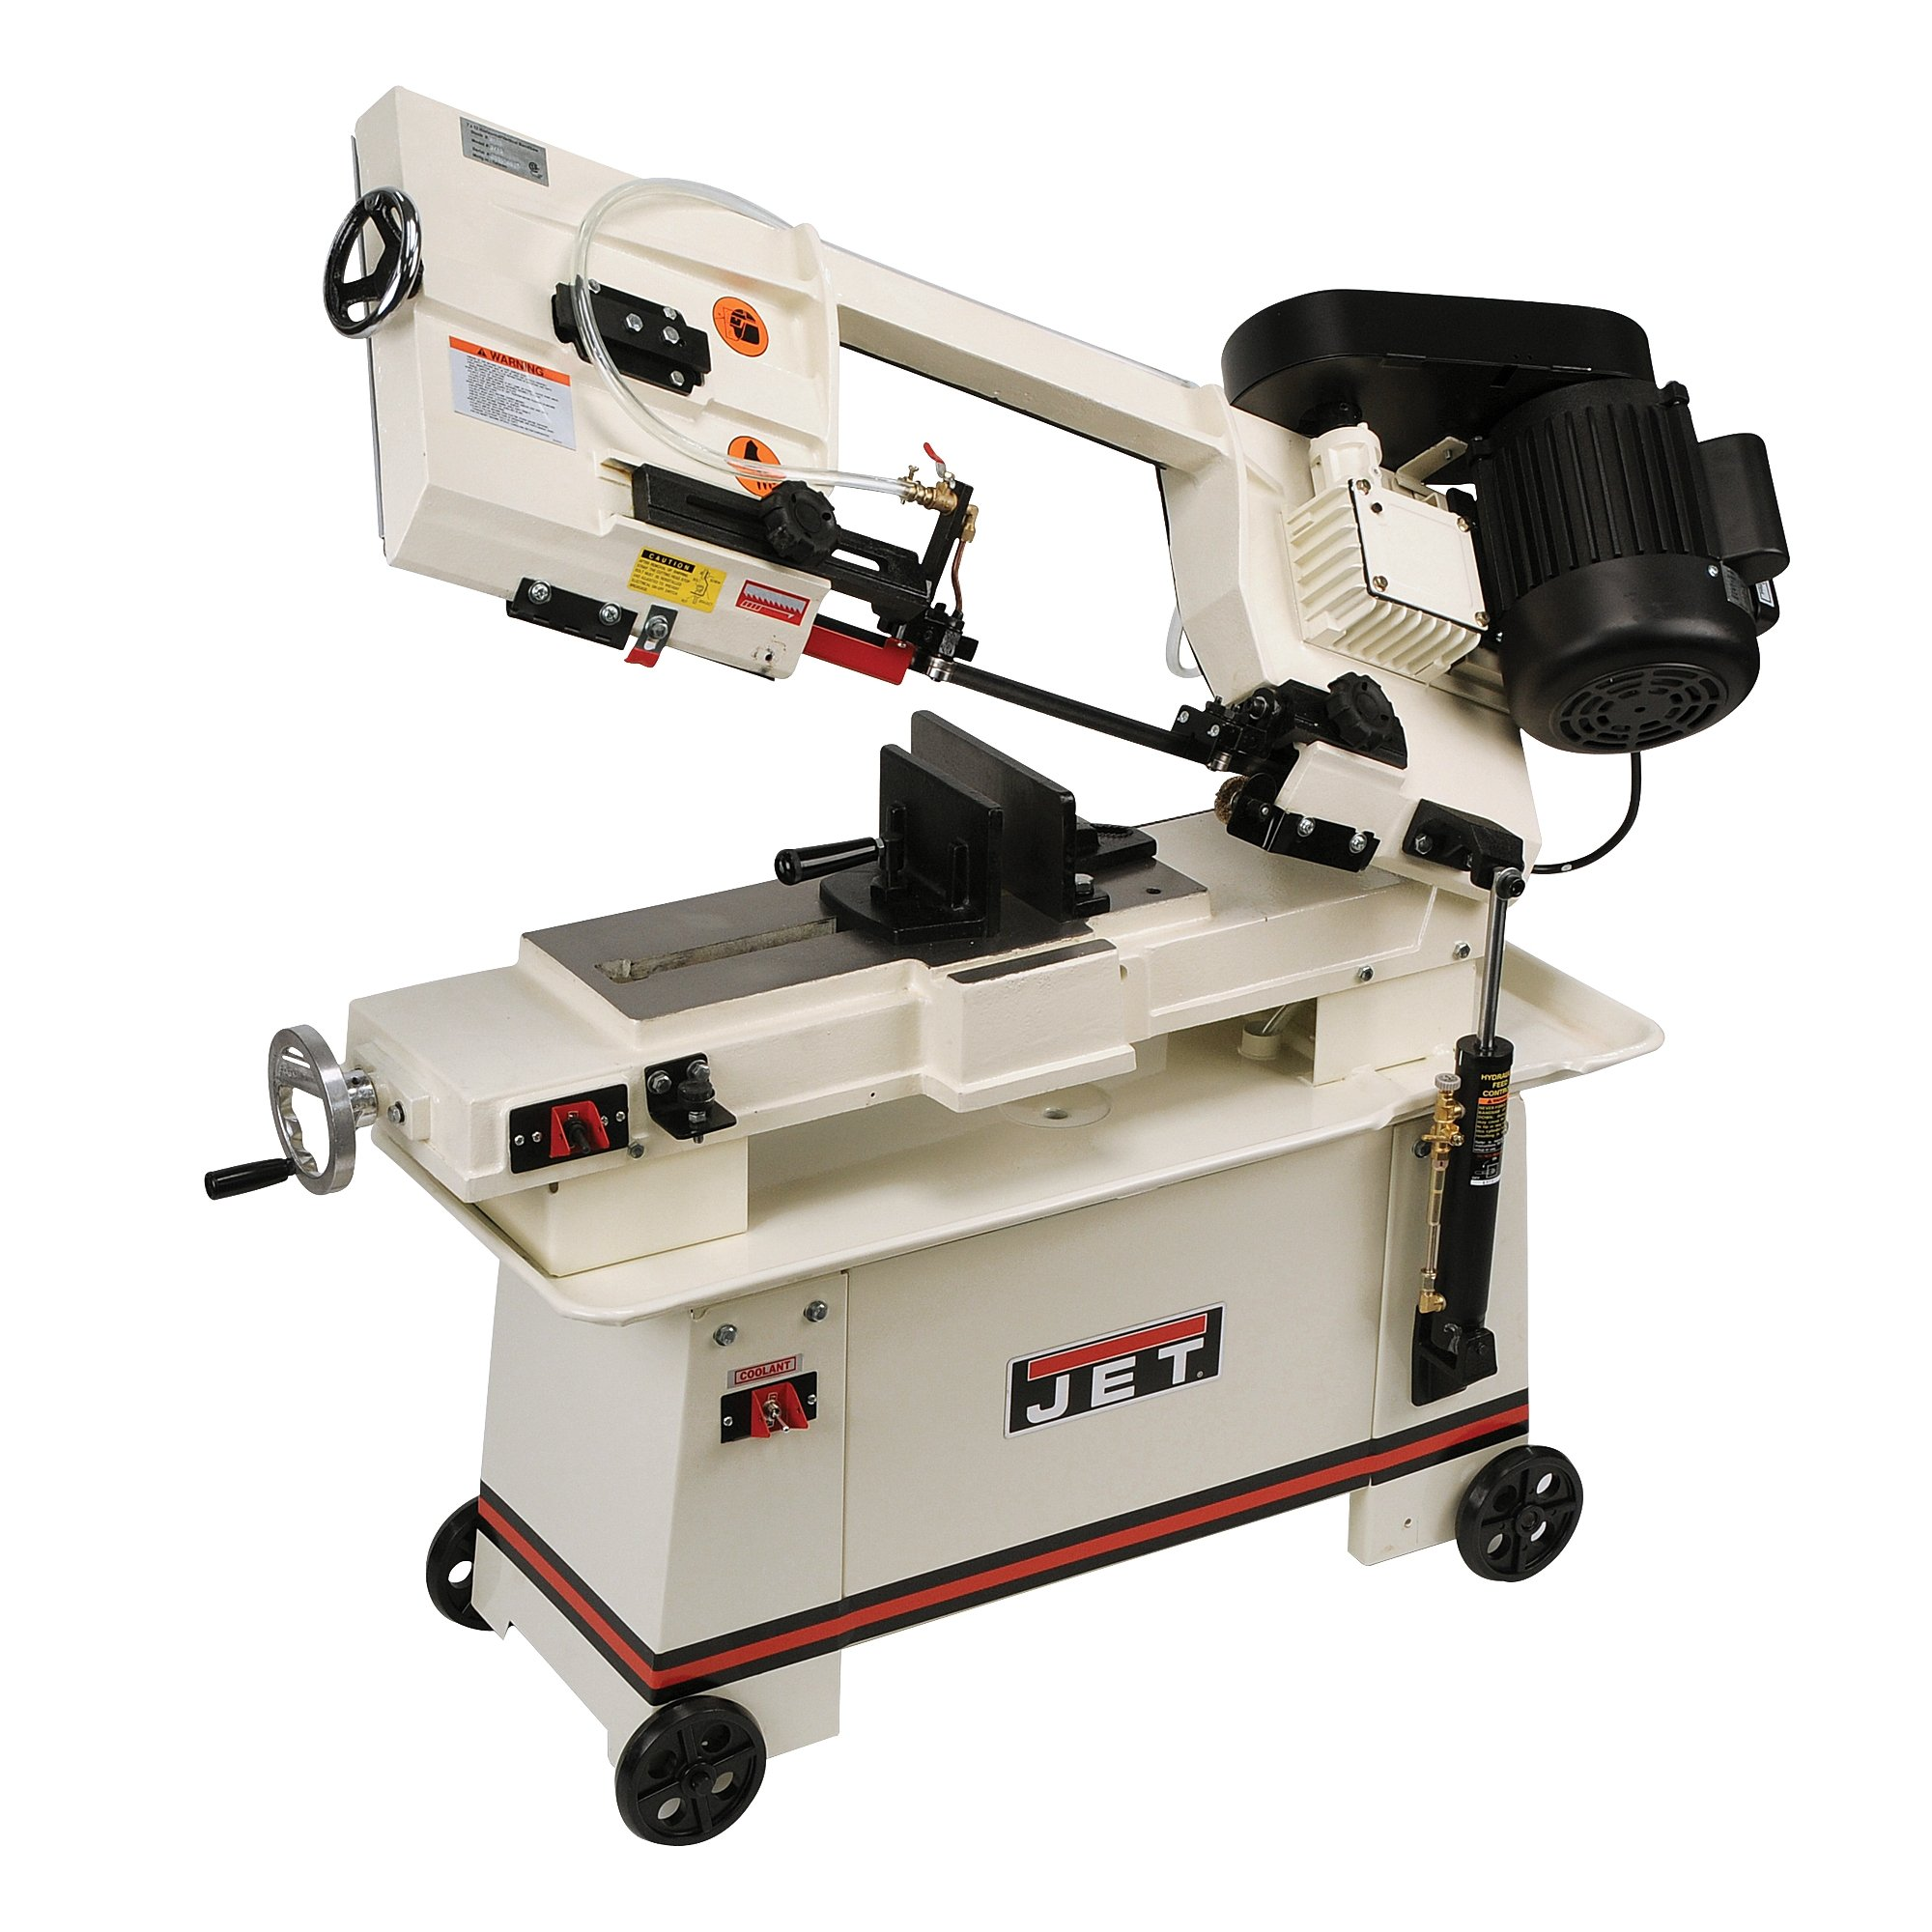 JET J-3410 7-Inch by 12-Inch 3/4-Horsepower 115-Volt Single Phase Horizontal Wet Bandsaw by Jet